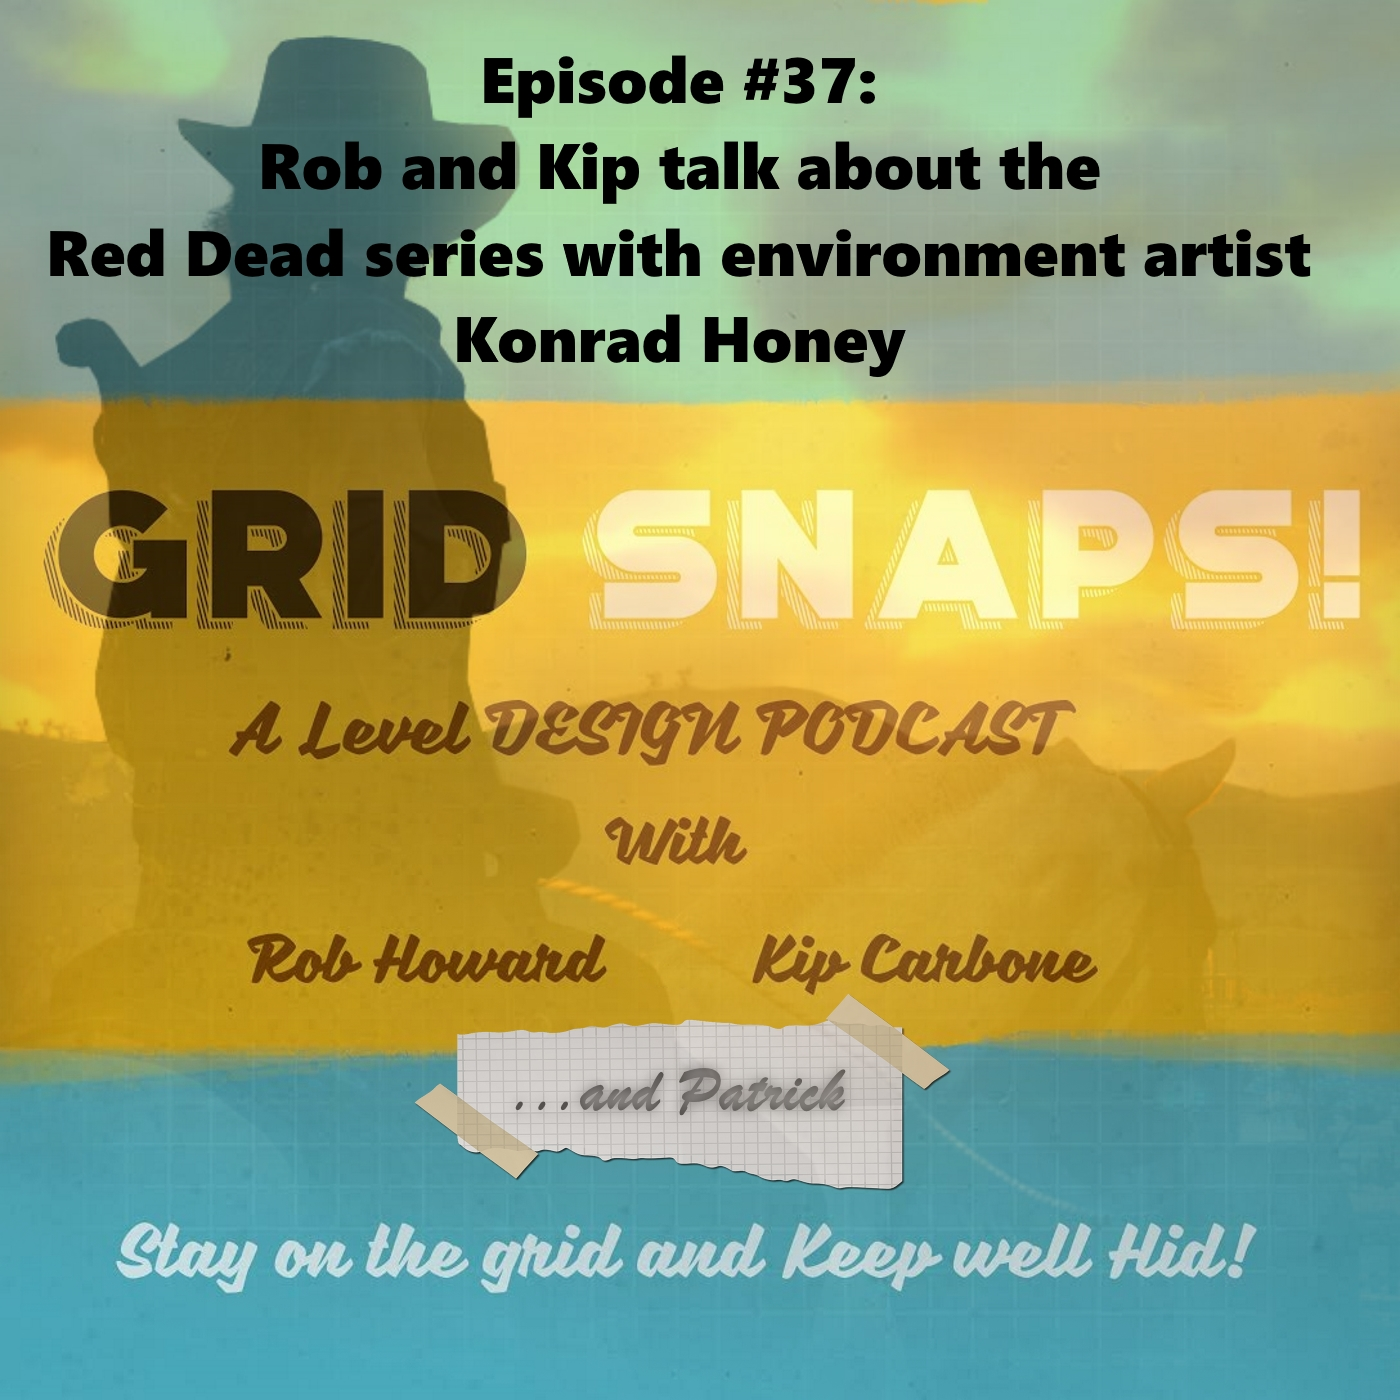 GSPC Episode #37: Rob and Kip discuss the Red Dead Redemption series with Environment Artist Konrad Honey